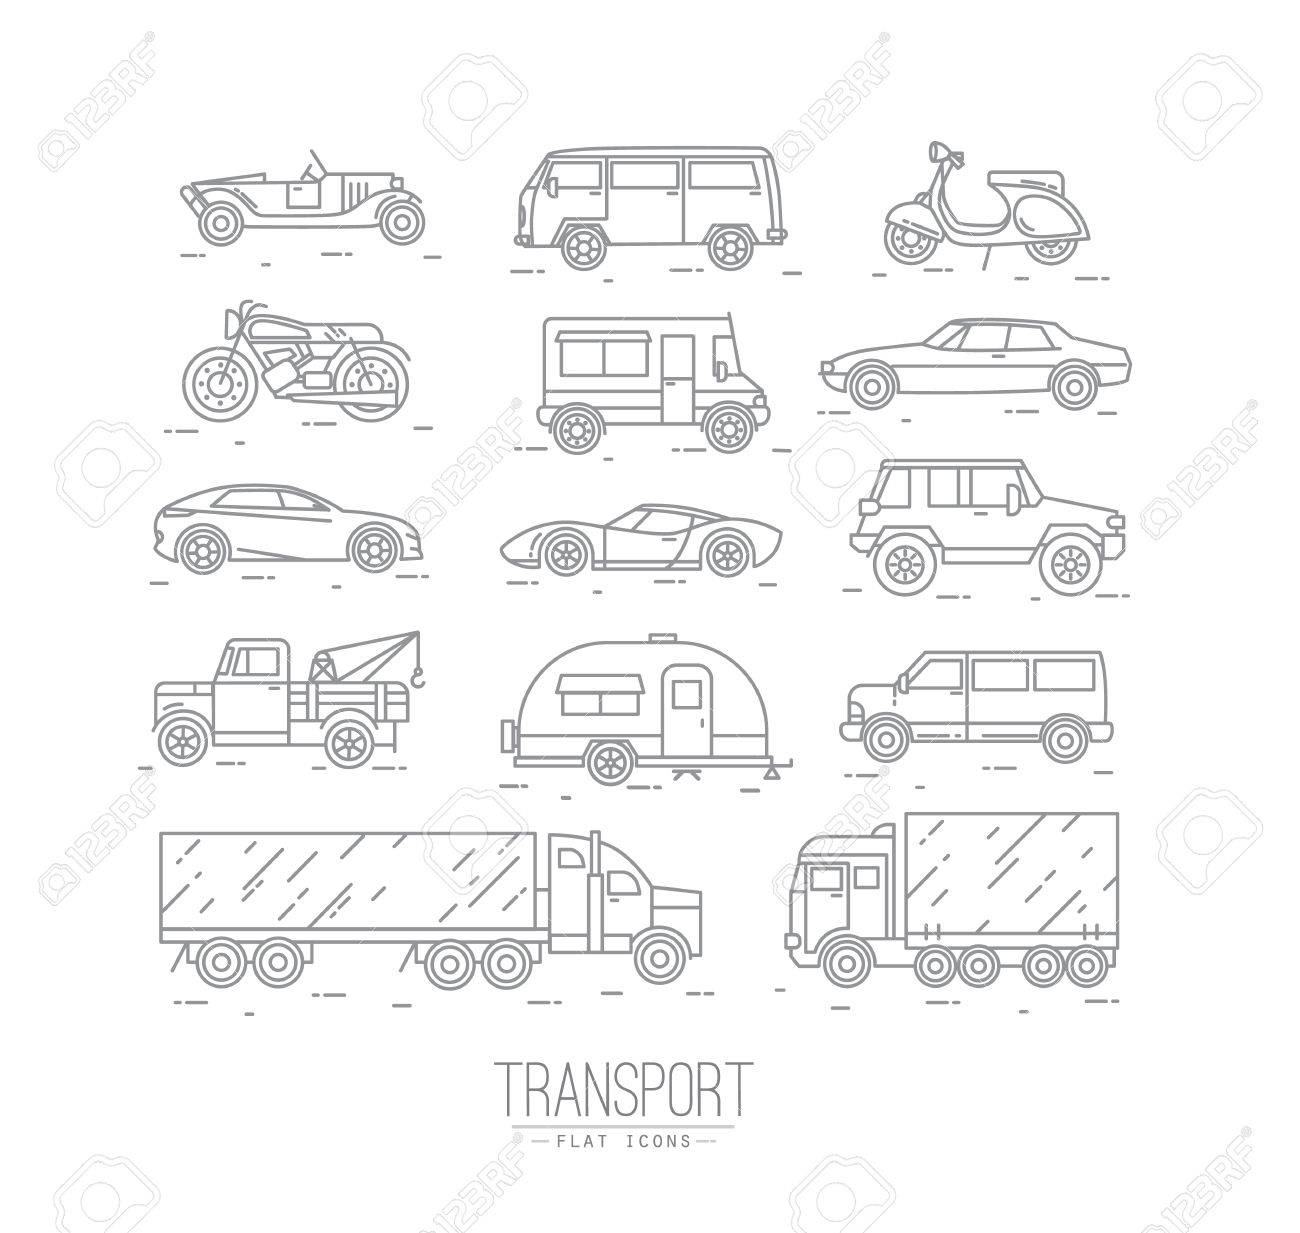 Set of transport icons in flat style car, moto, truck, scooter drawing with gray lines on white background - 59844548